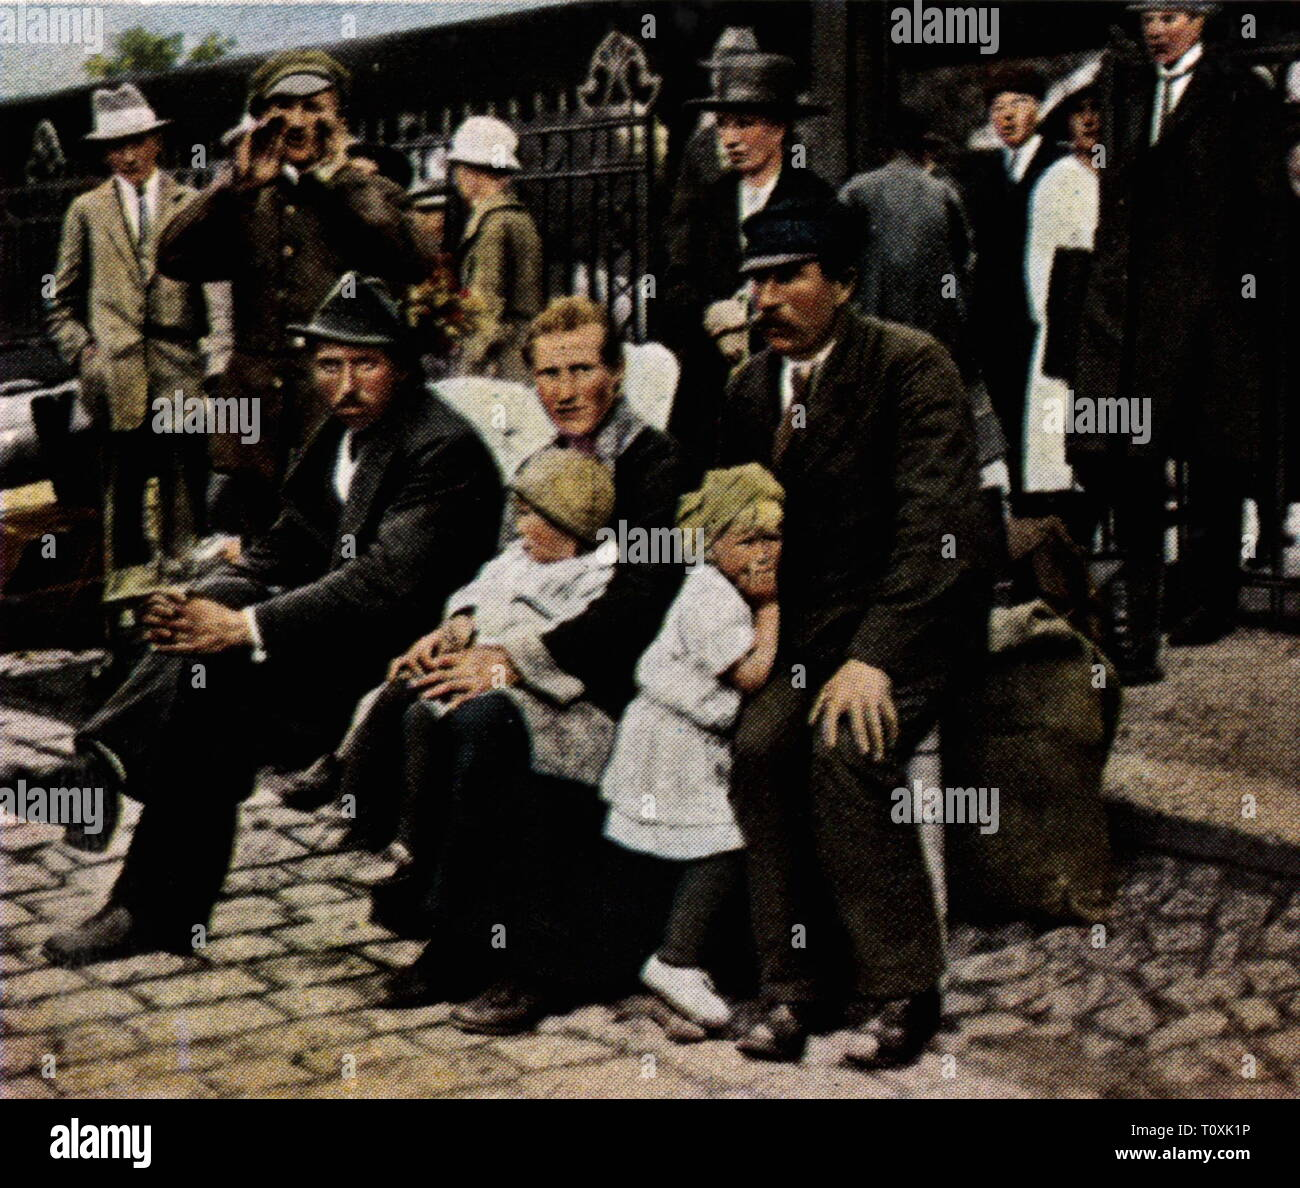 expulsion of German nationals from Poland, optants at Schneidemuehl railway station, September  1925, Additional-Rights-Clearance-Info-Not-Available - Stock Image